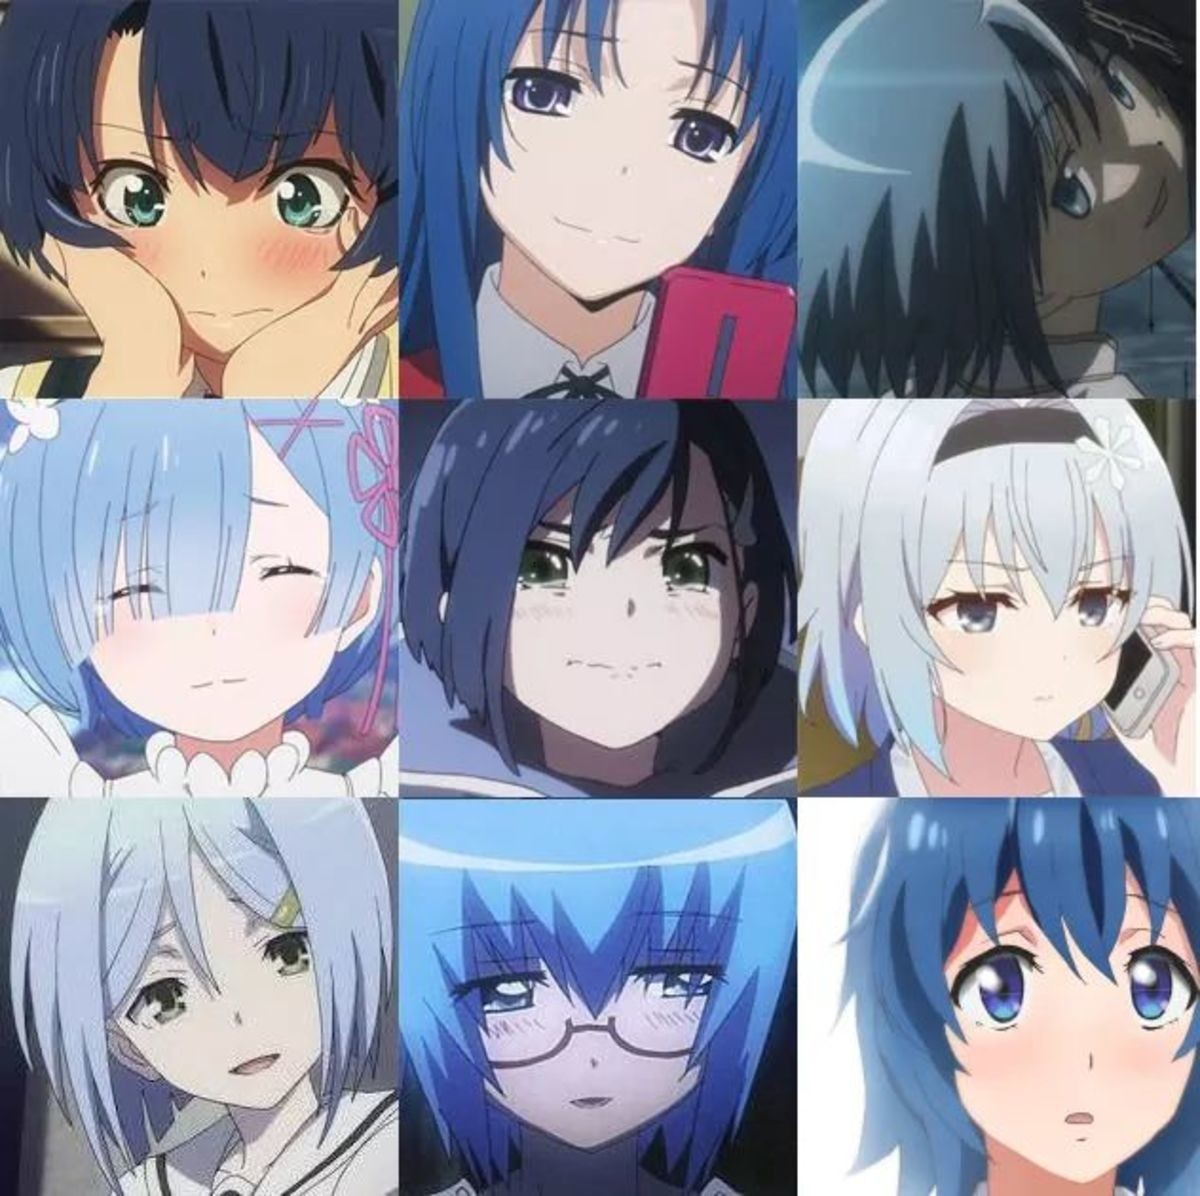 Blue Hair Is a Curse. join list: Lewds4DHeart (1611 subs)Mention History join list: